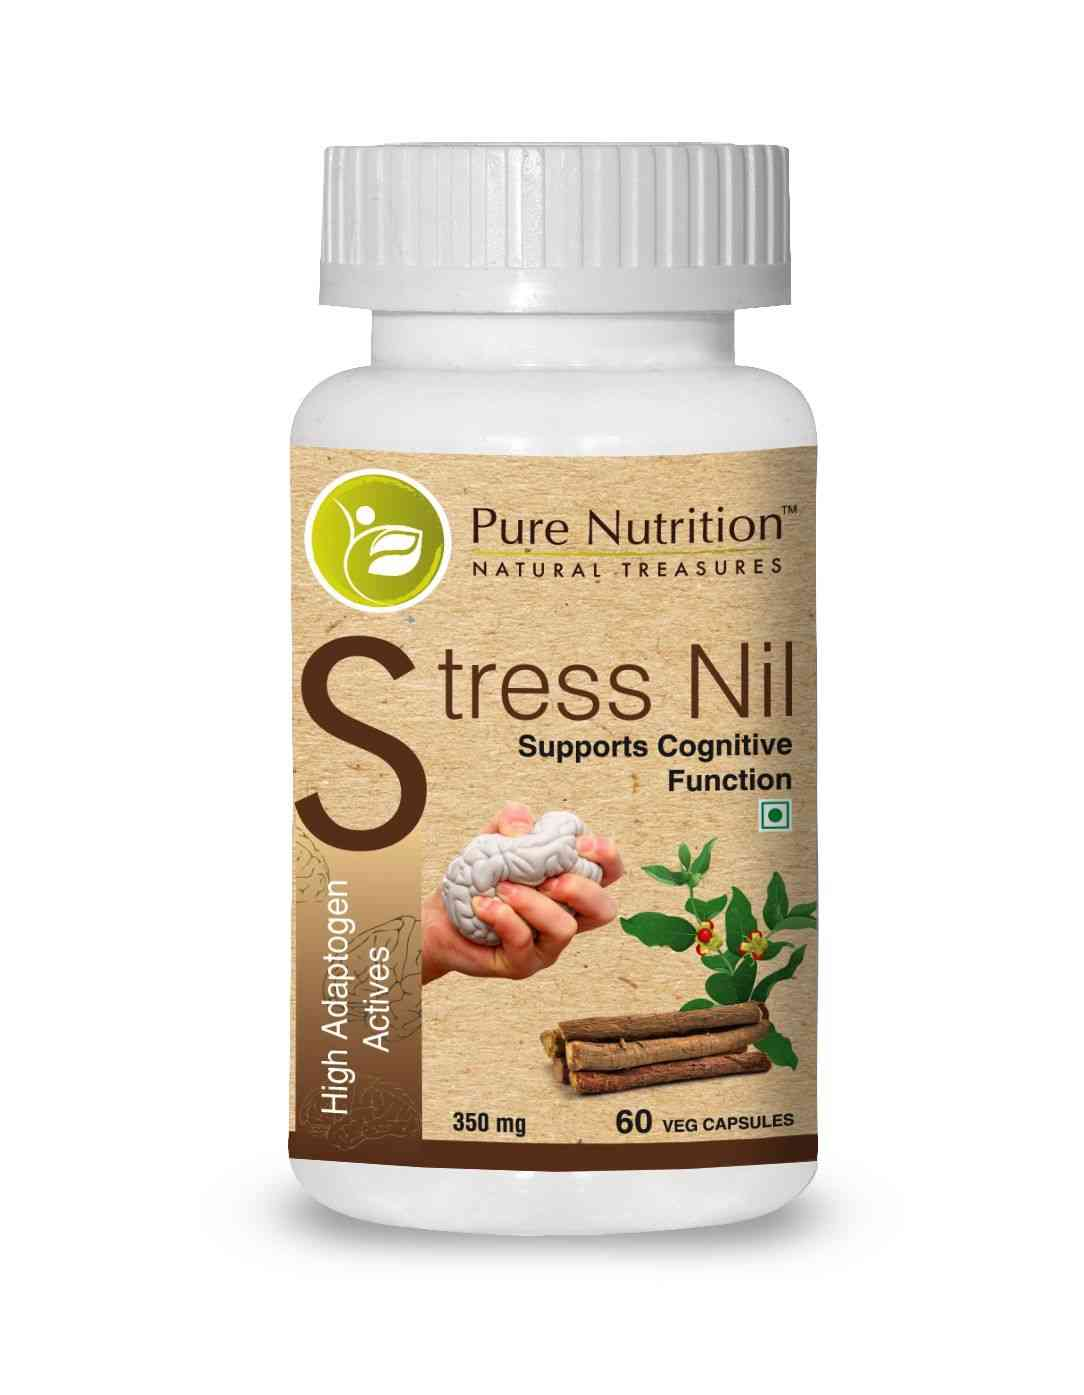 Pure Nutrition Stress Nil (higher Adptogen Activities) - 60 Caps